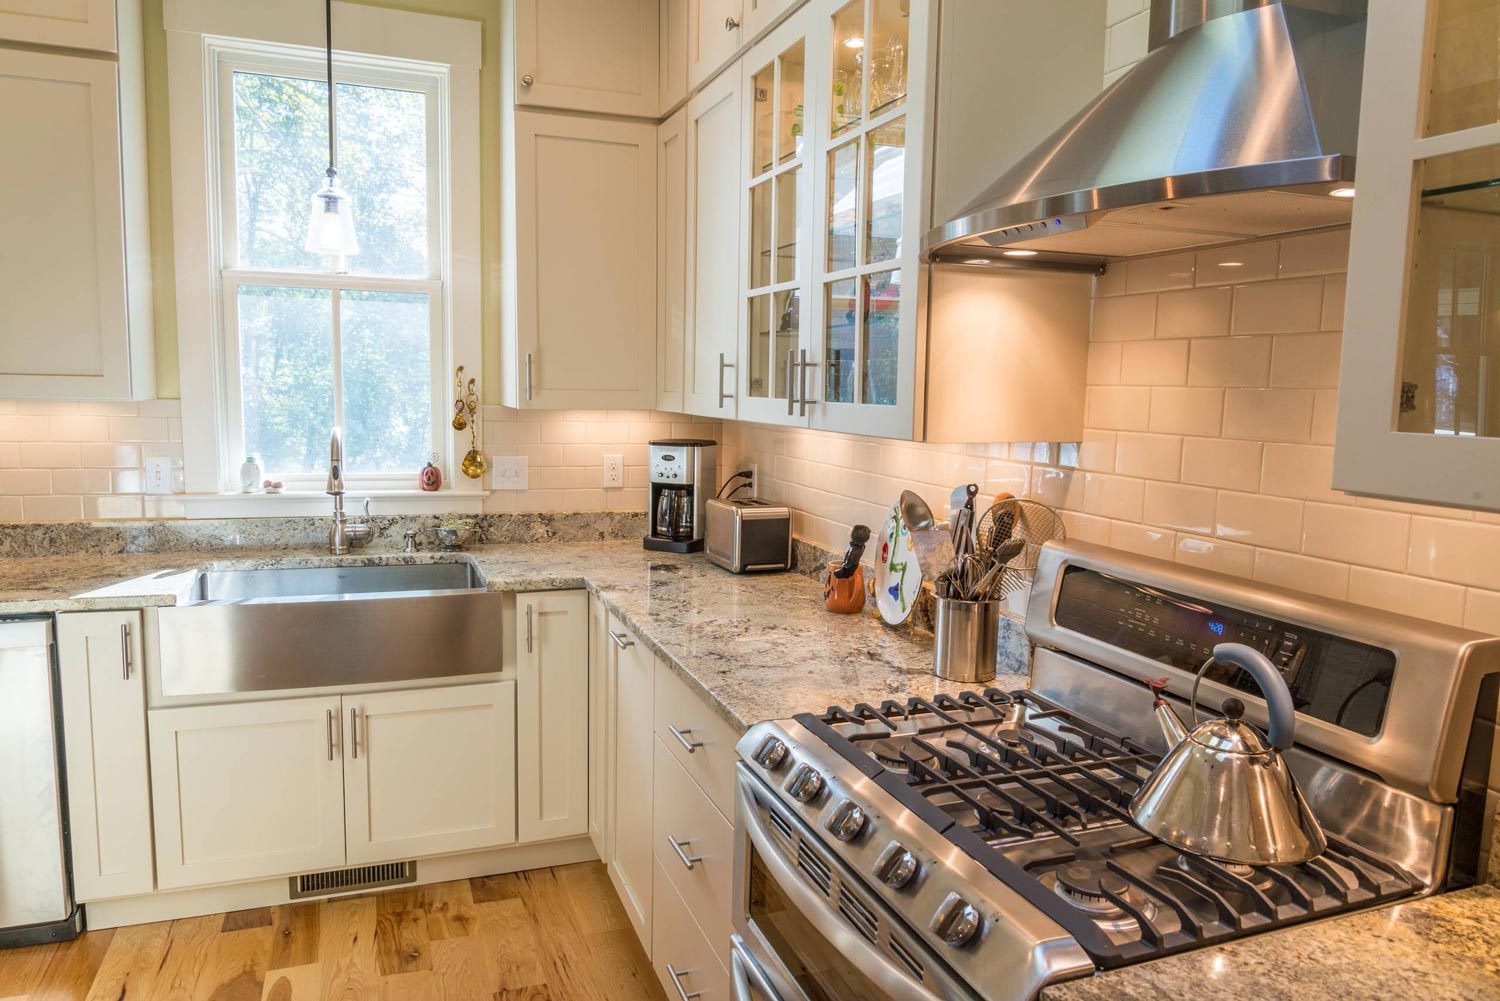 Cost To Remodel A Kitchen: 2019 Kitchen Remodel Cost Estimator